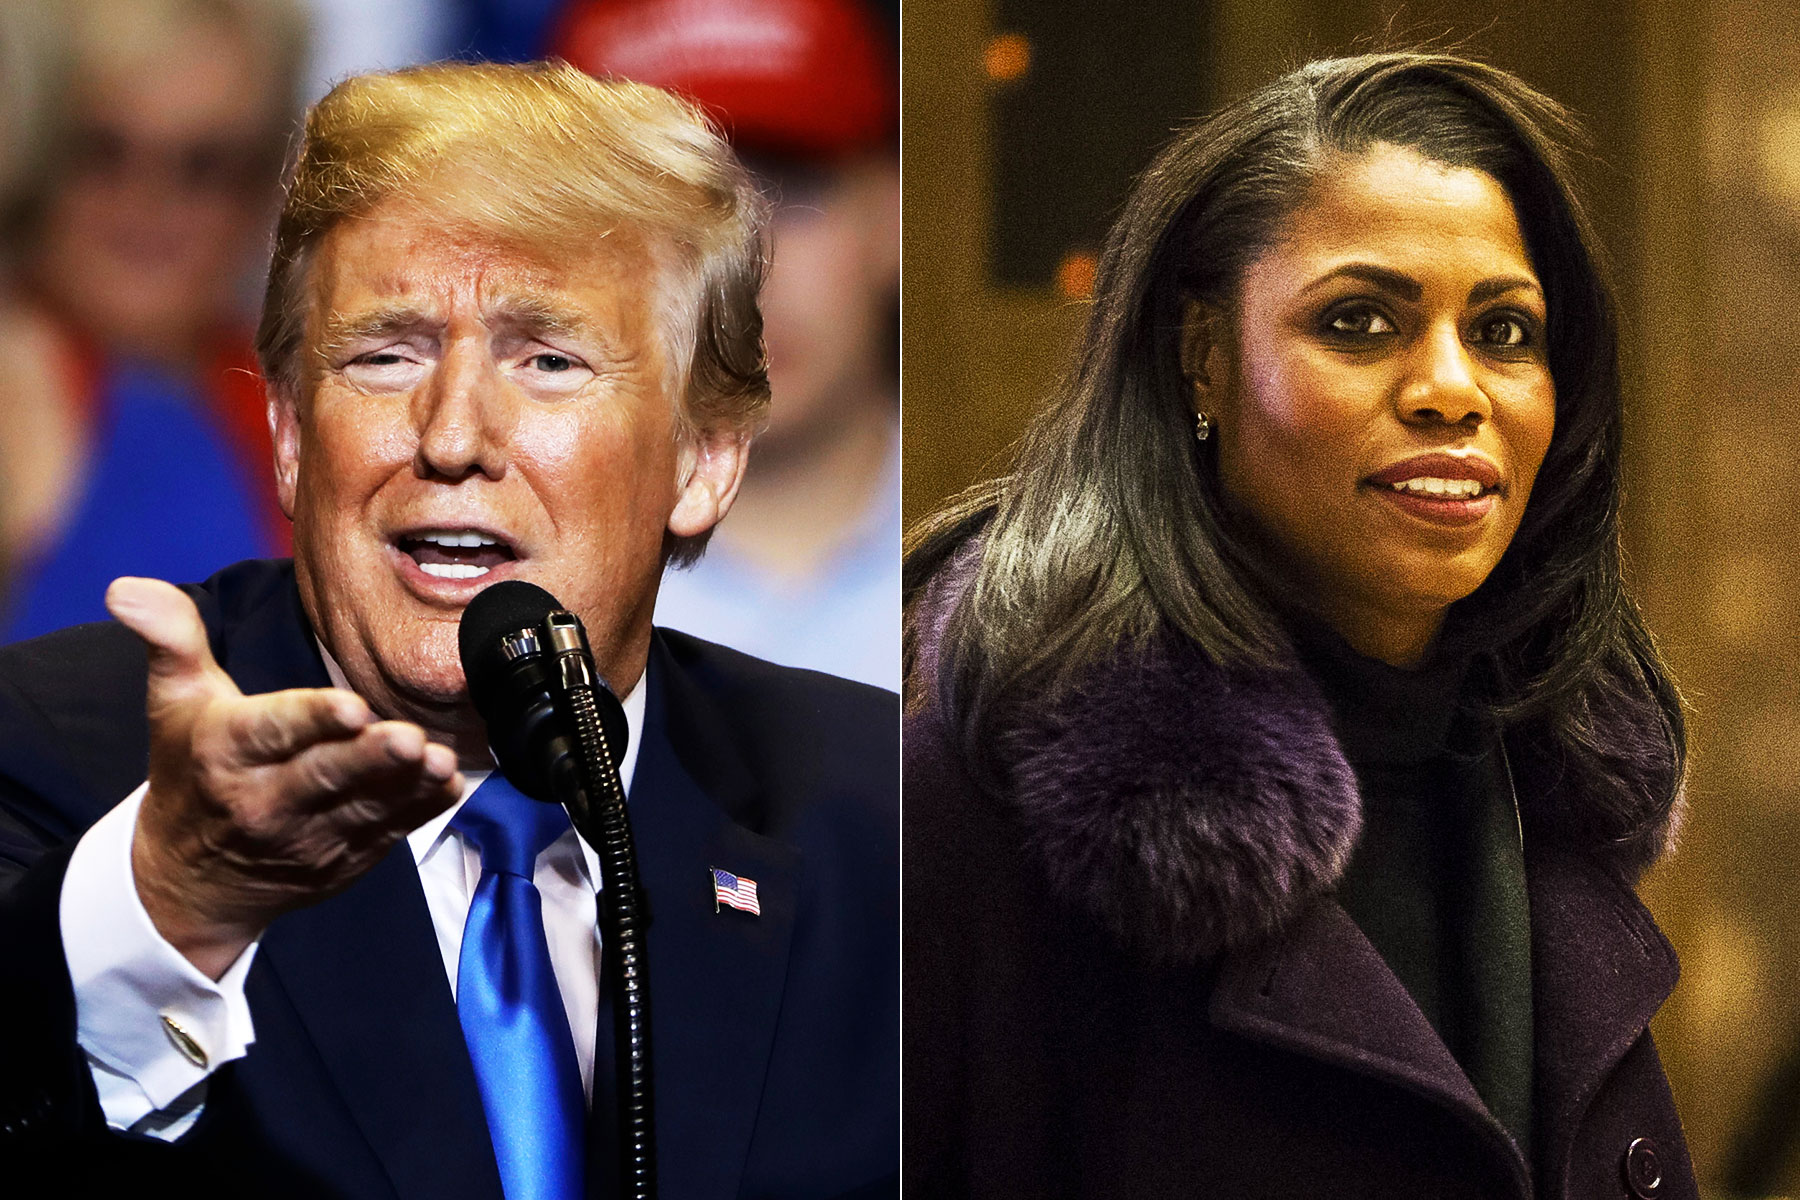 Trump Is Melting Down Over Omarosa's Racial Allegations